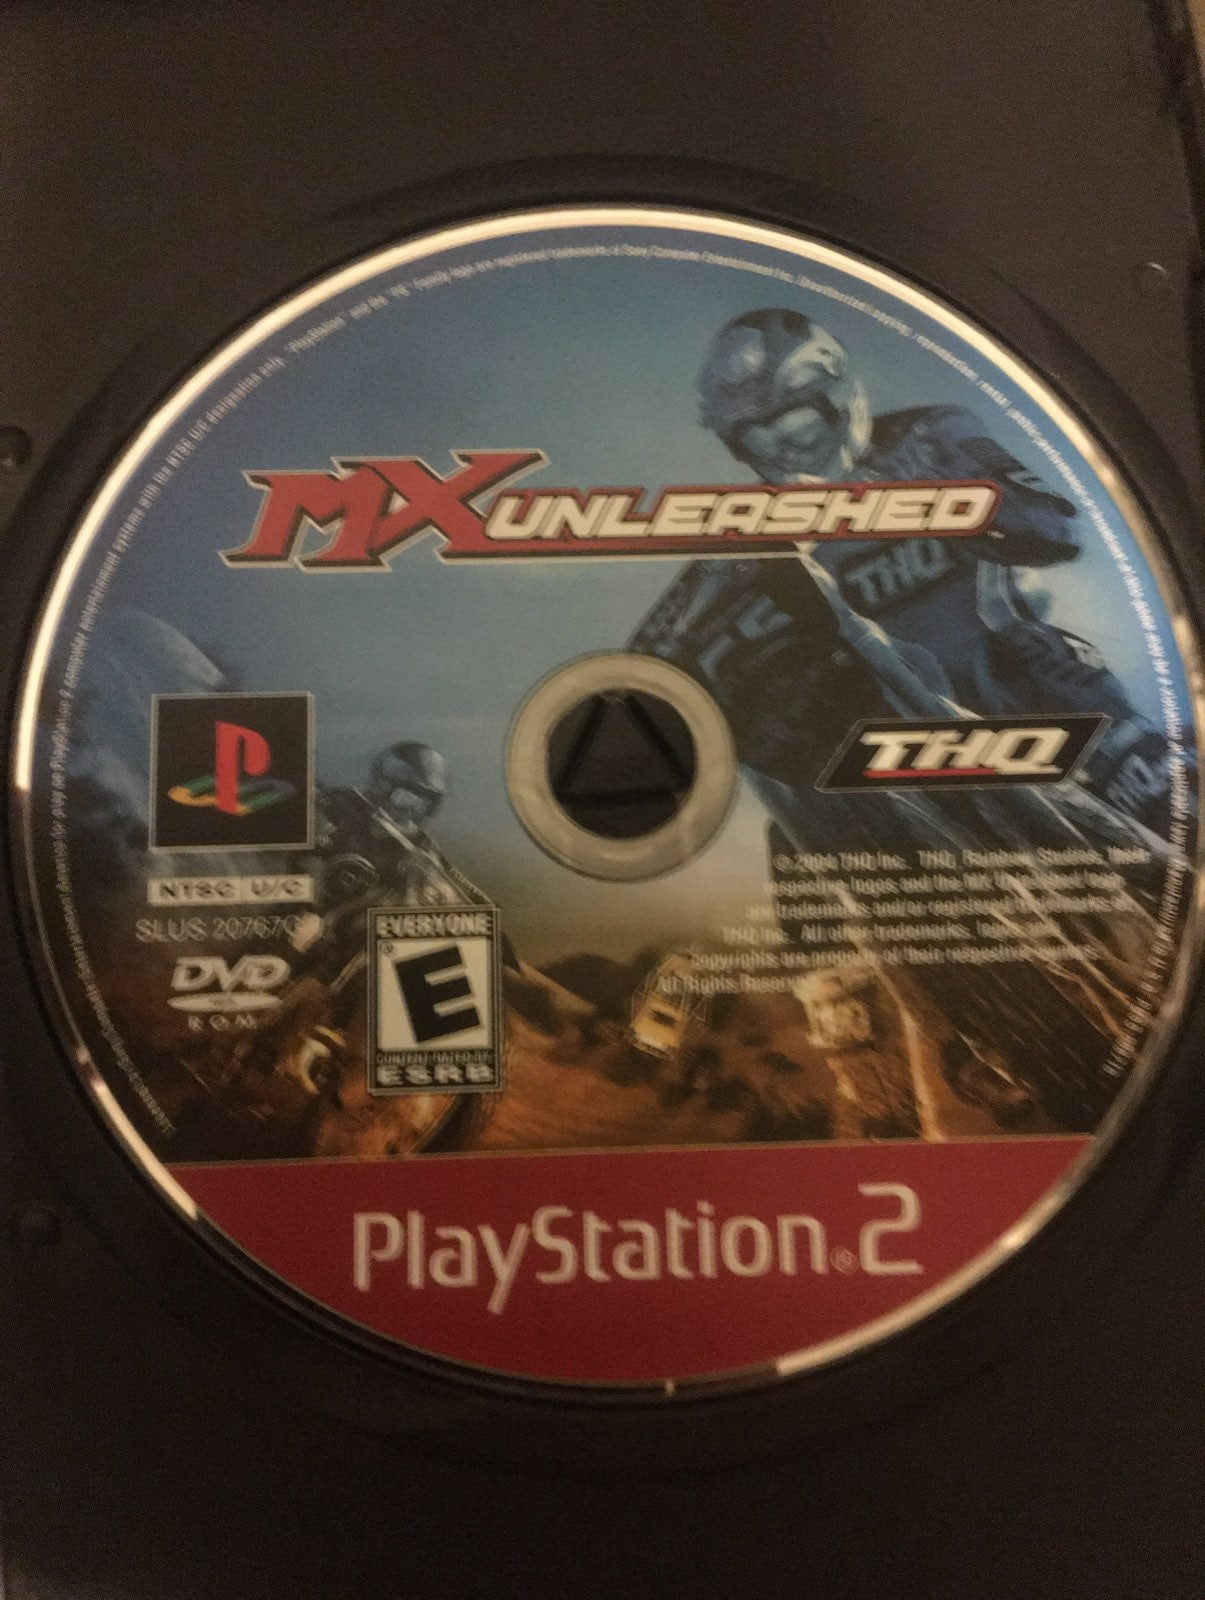 PS2 mx unleshed